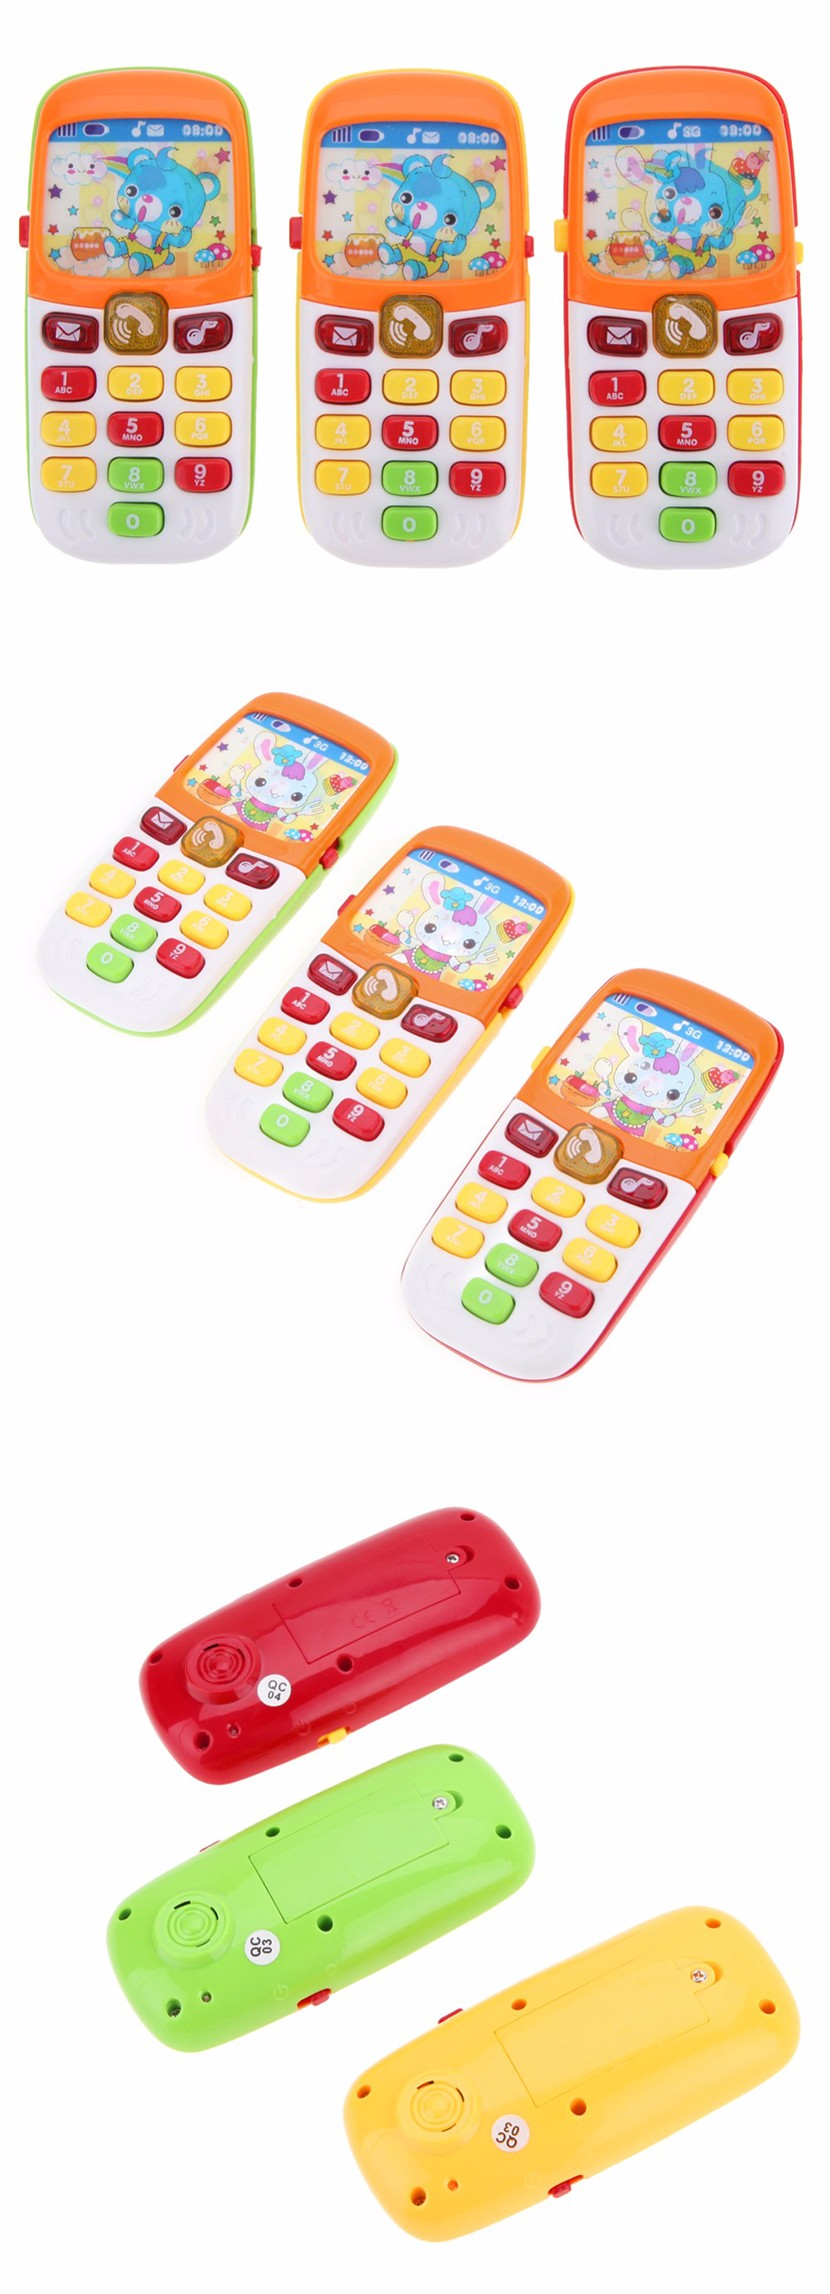 Mini Cute Electronic Toy Phone Children Phone Toy Musical Early Education Cartoon Mobile Phone Telephone Cellphone Baby Toys